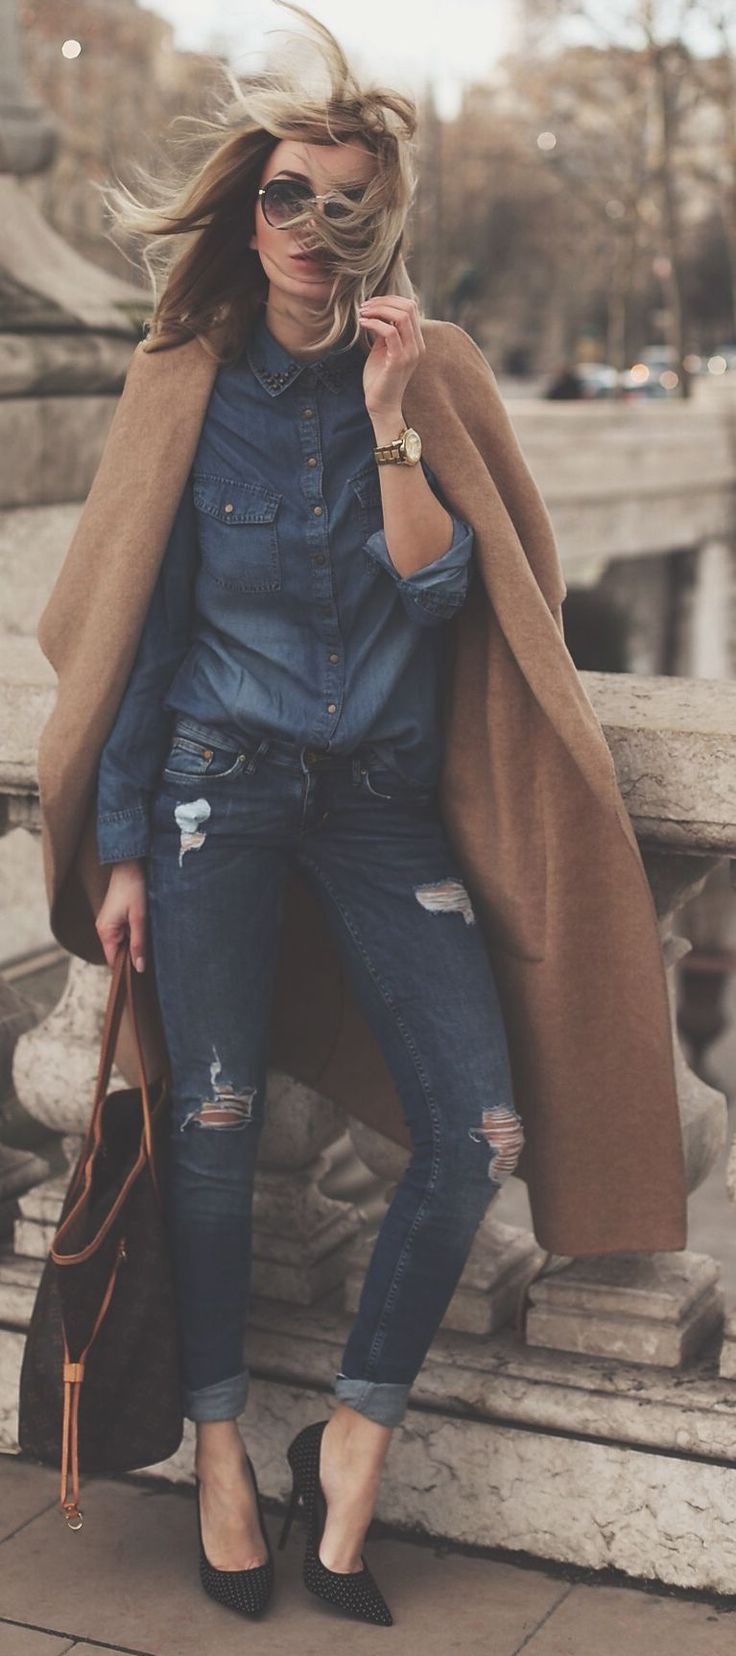 Fall / Winter - street chic style - denim on denim - denim shirt + dark denim ragged skinnies + black suede stilettos + camel long coat + brown handbag + aviators